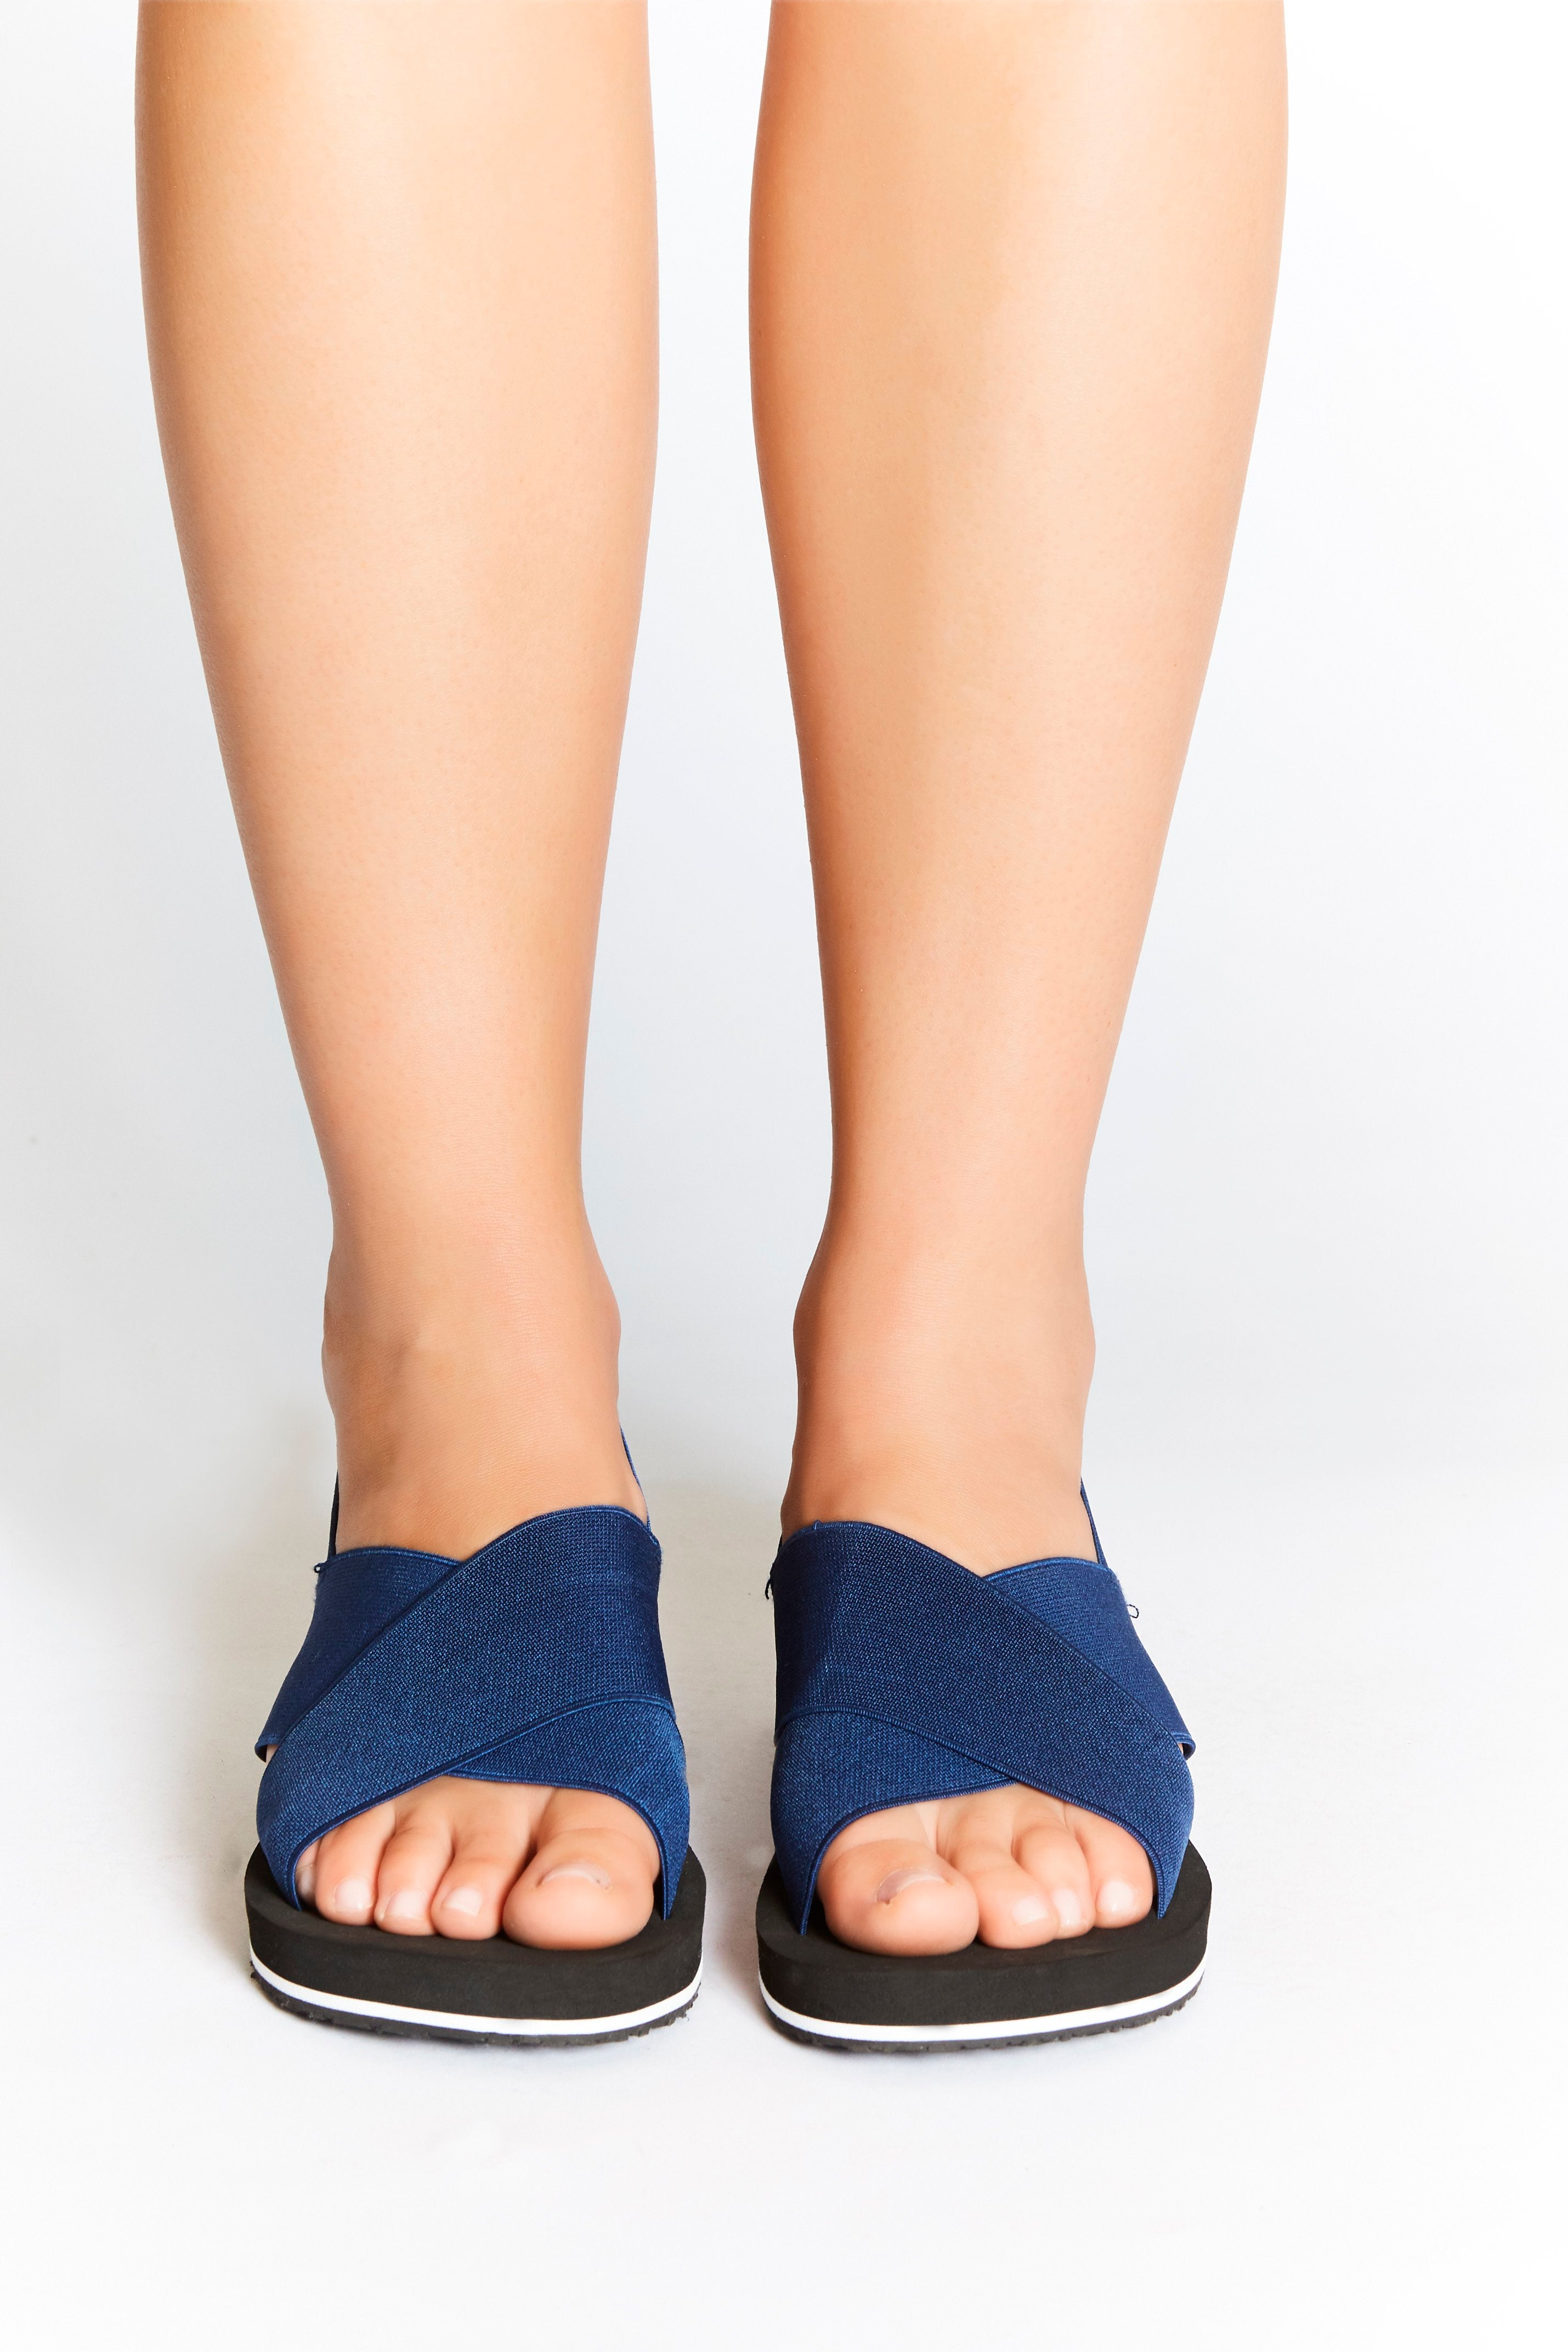 Comfortable, navy, non-leather sandals for modern, sporty and active women. Ideal for everyday, travel, yoga and style with comfort.